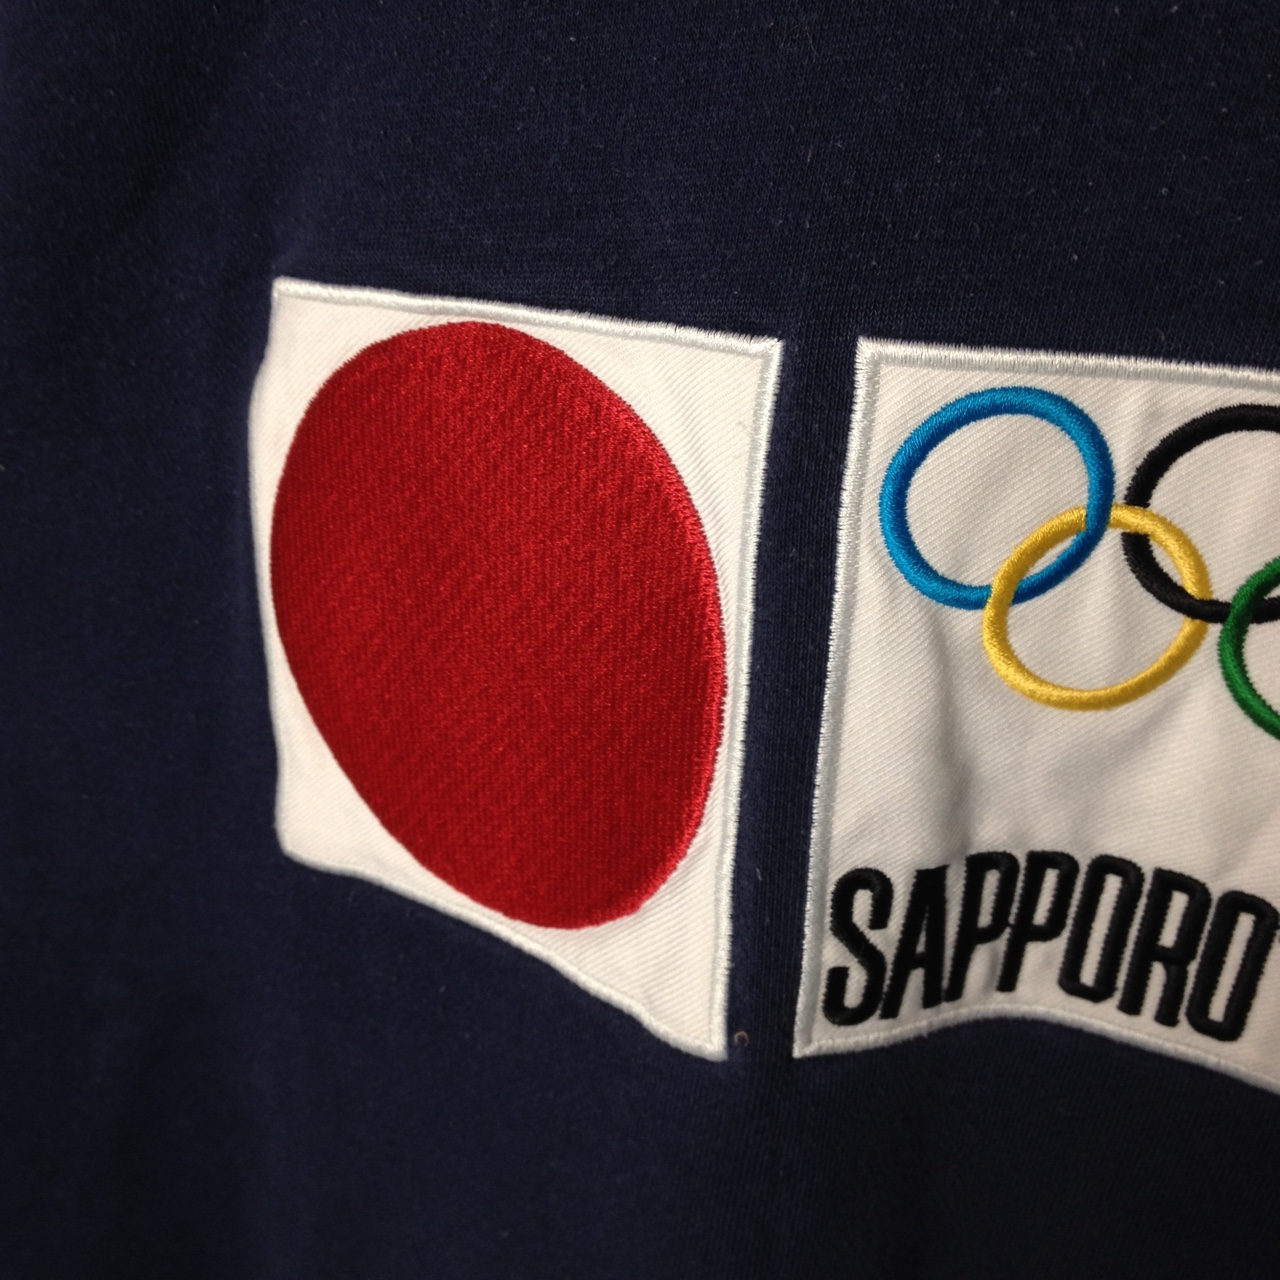 Dope Adidas Sapporo 72 sweater from The Olympic Depop